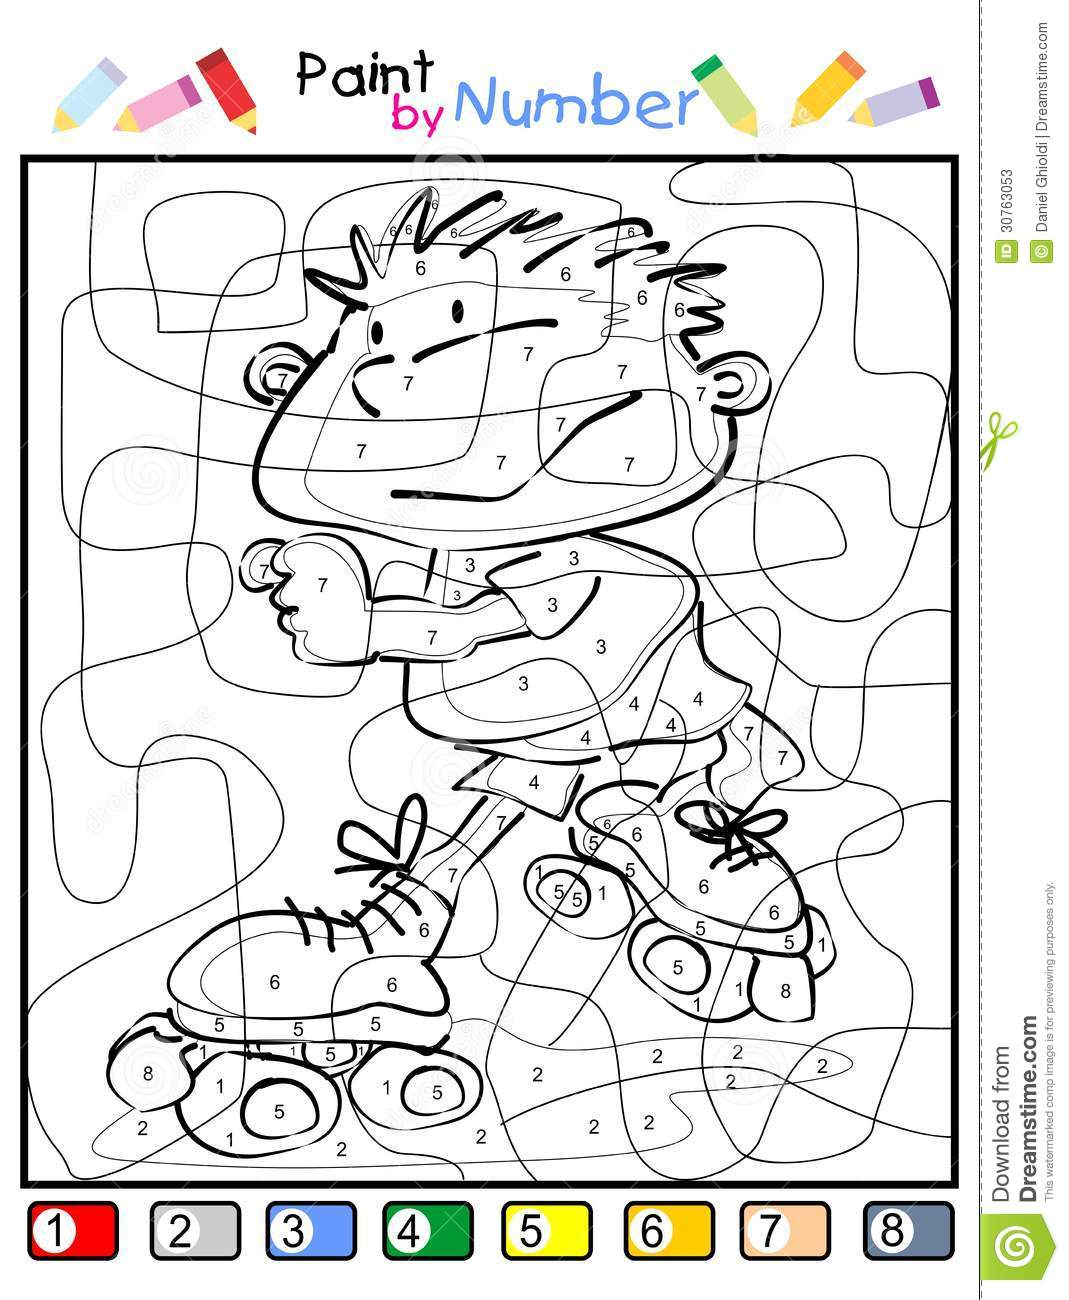 Paint By Number - Child Skating Stock Vector - Illustration of ...